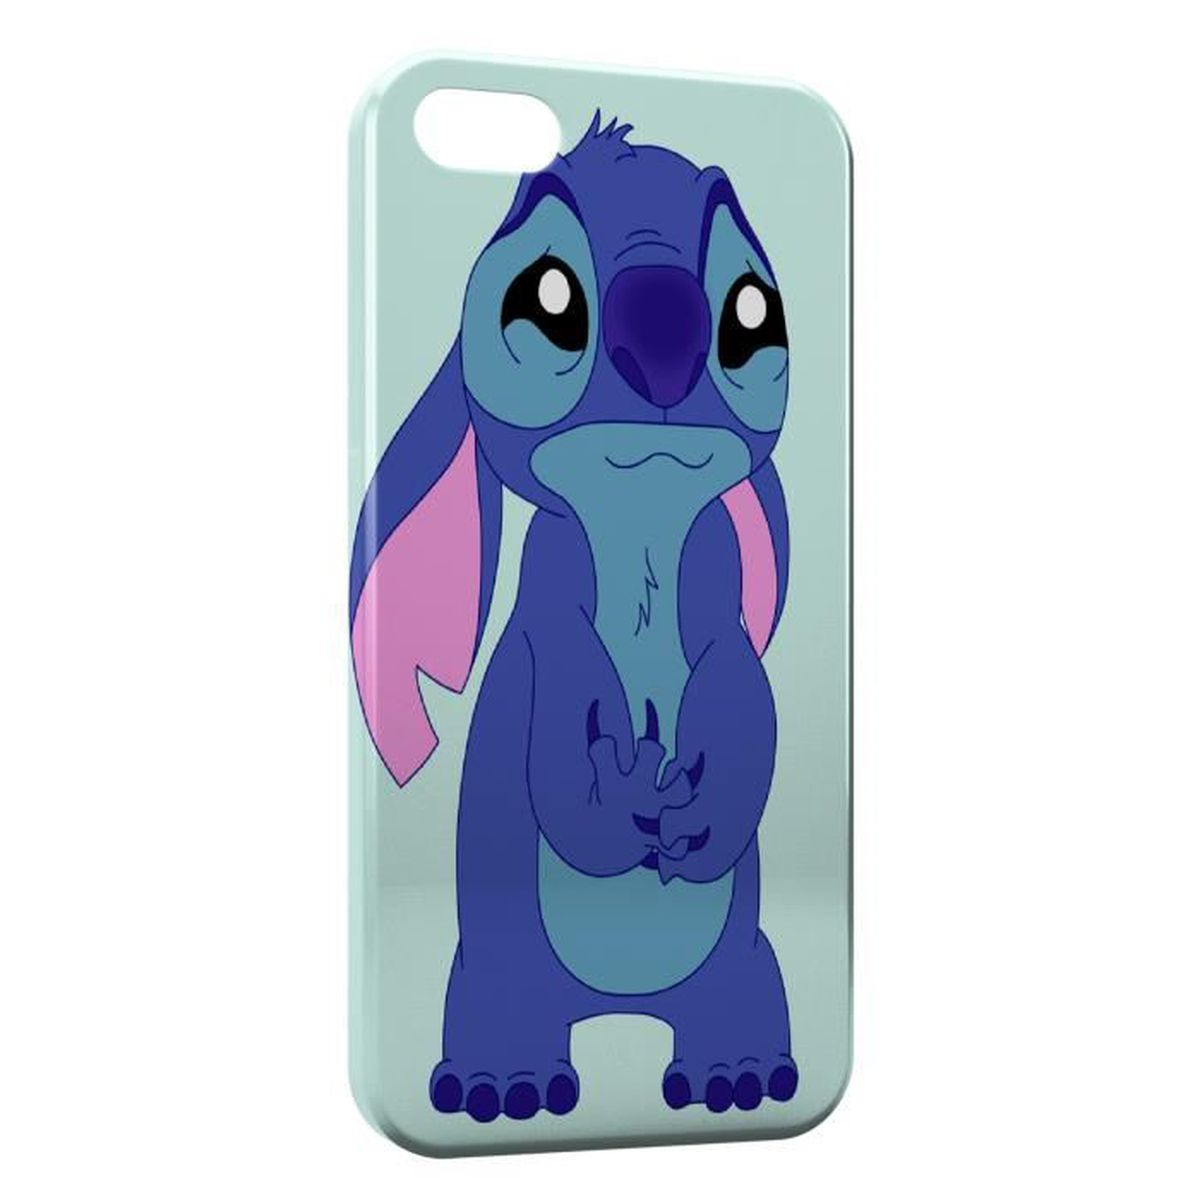 coque iphone 6 avec stitch